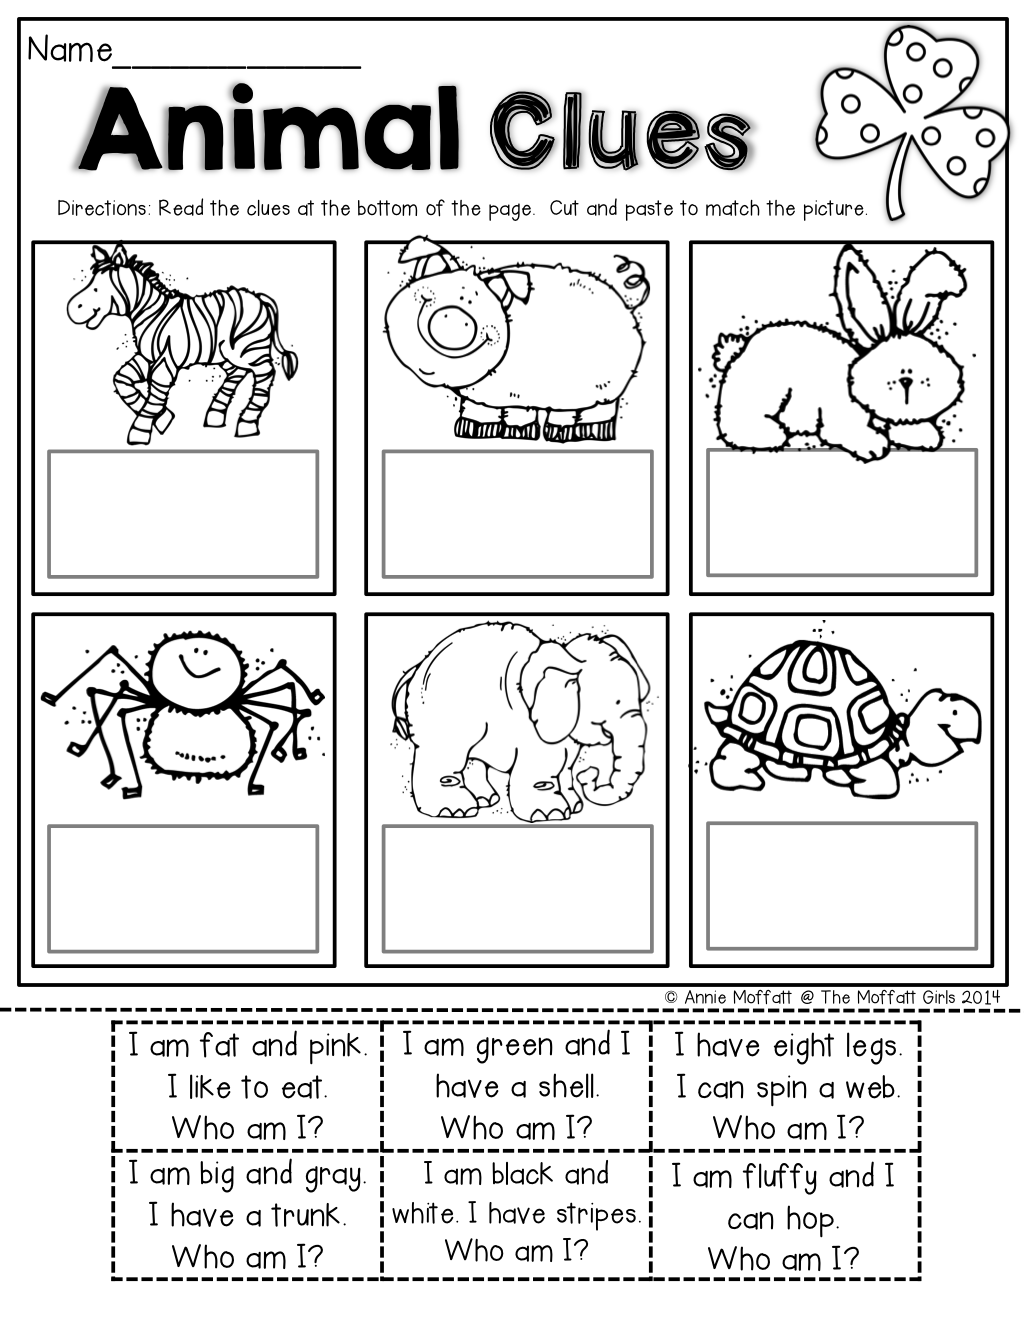 Read SIMPLE sentence clues, cut and paste to match the picture ...